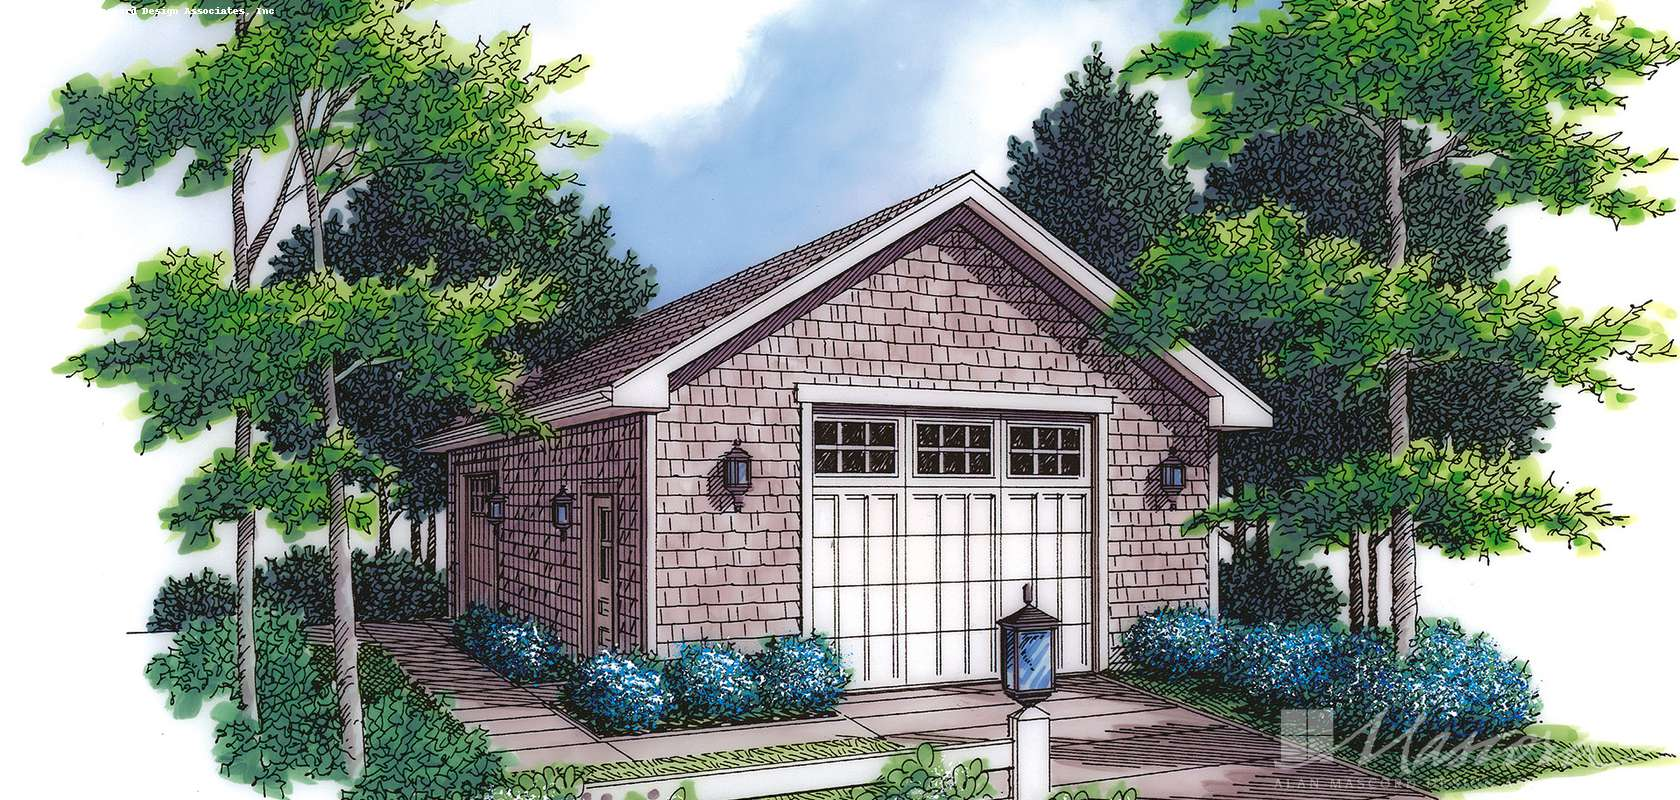 Mascord House Plan 5013: The Rossi